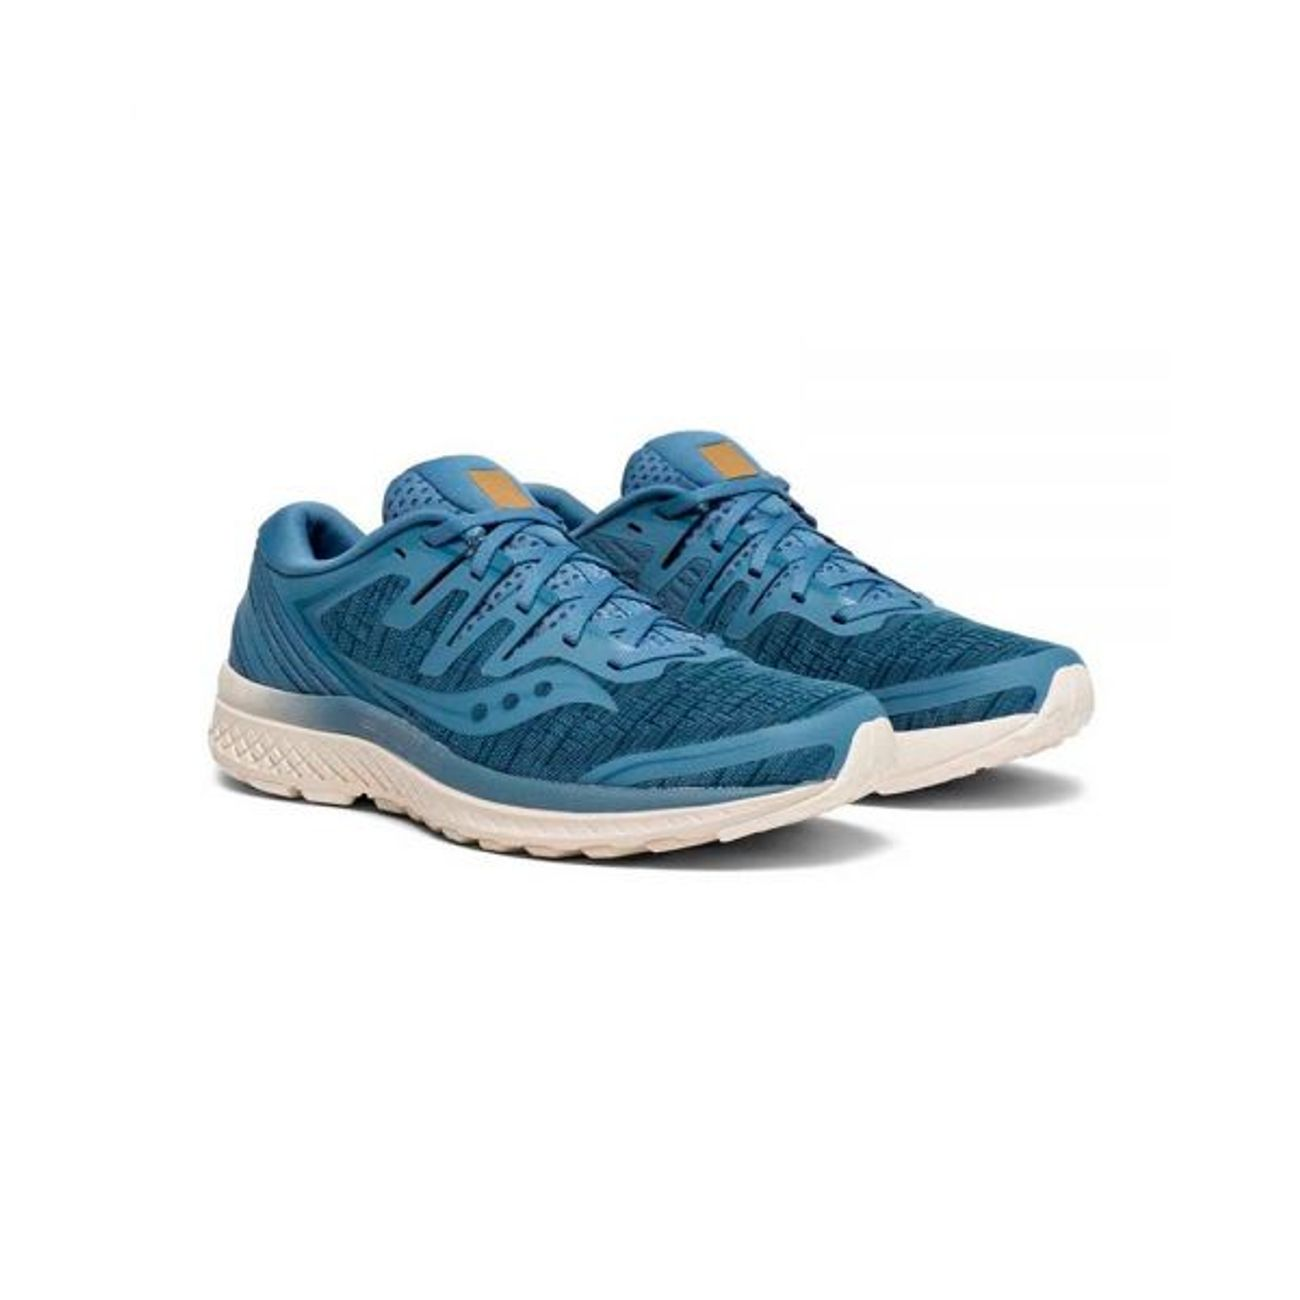 Bleu 41 Running S10464 Saucony Adulte 2 Femme Iso Guide c3JT1lKuF